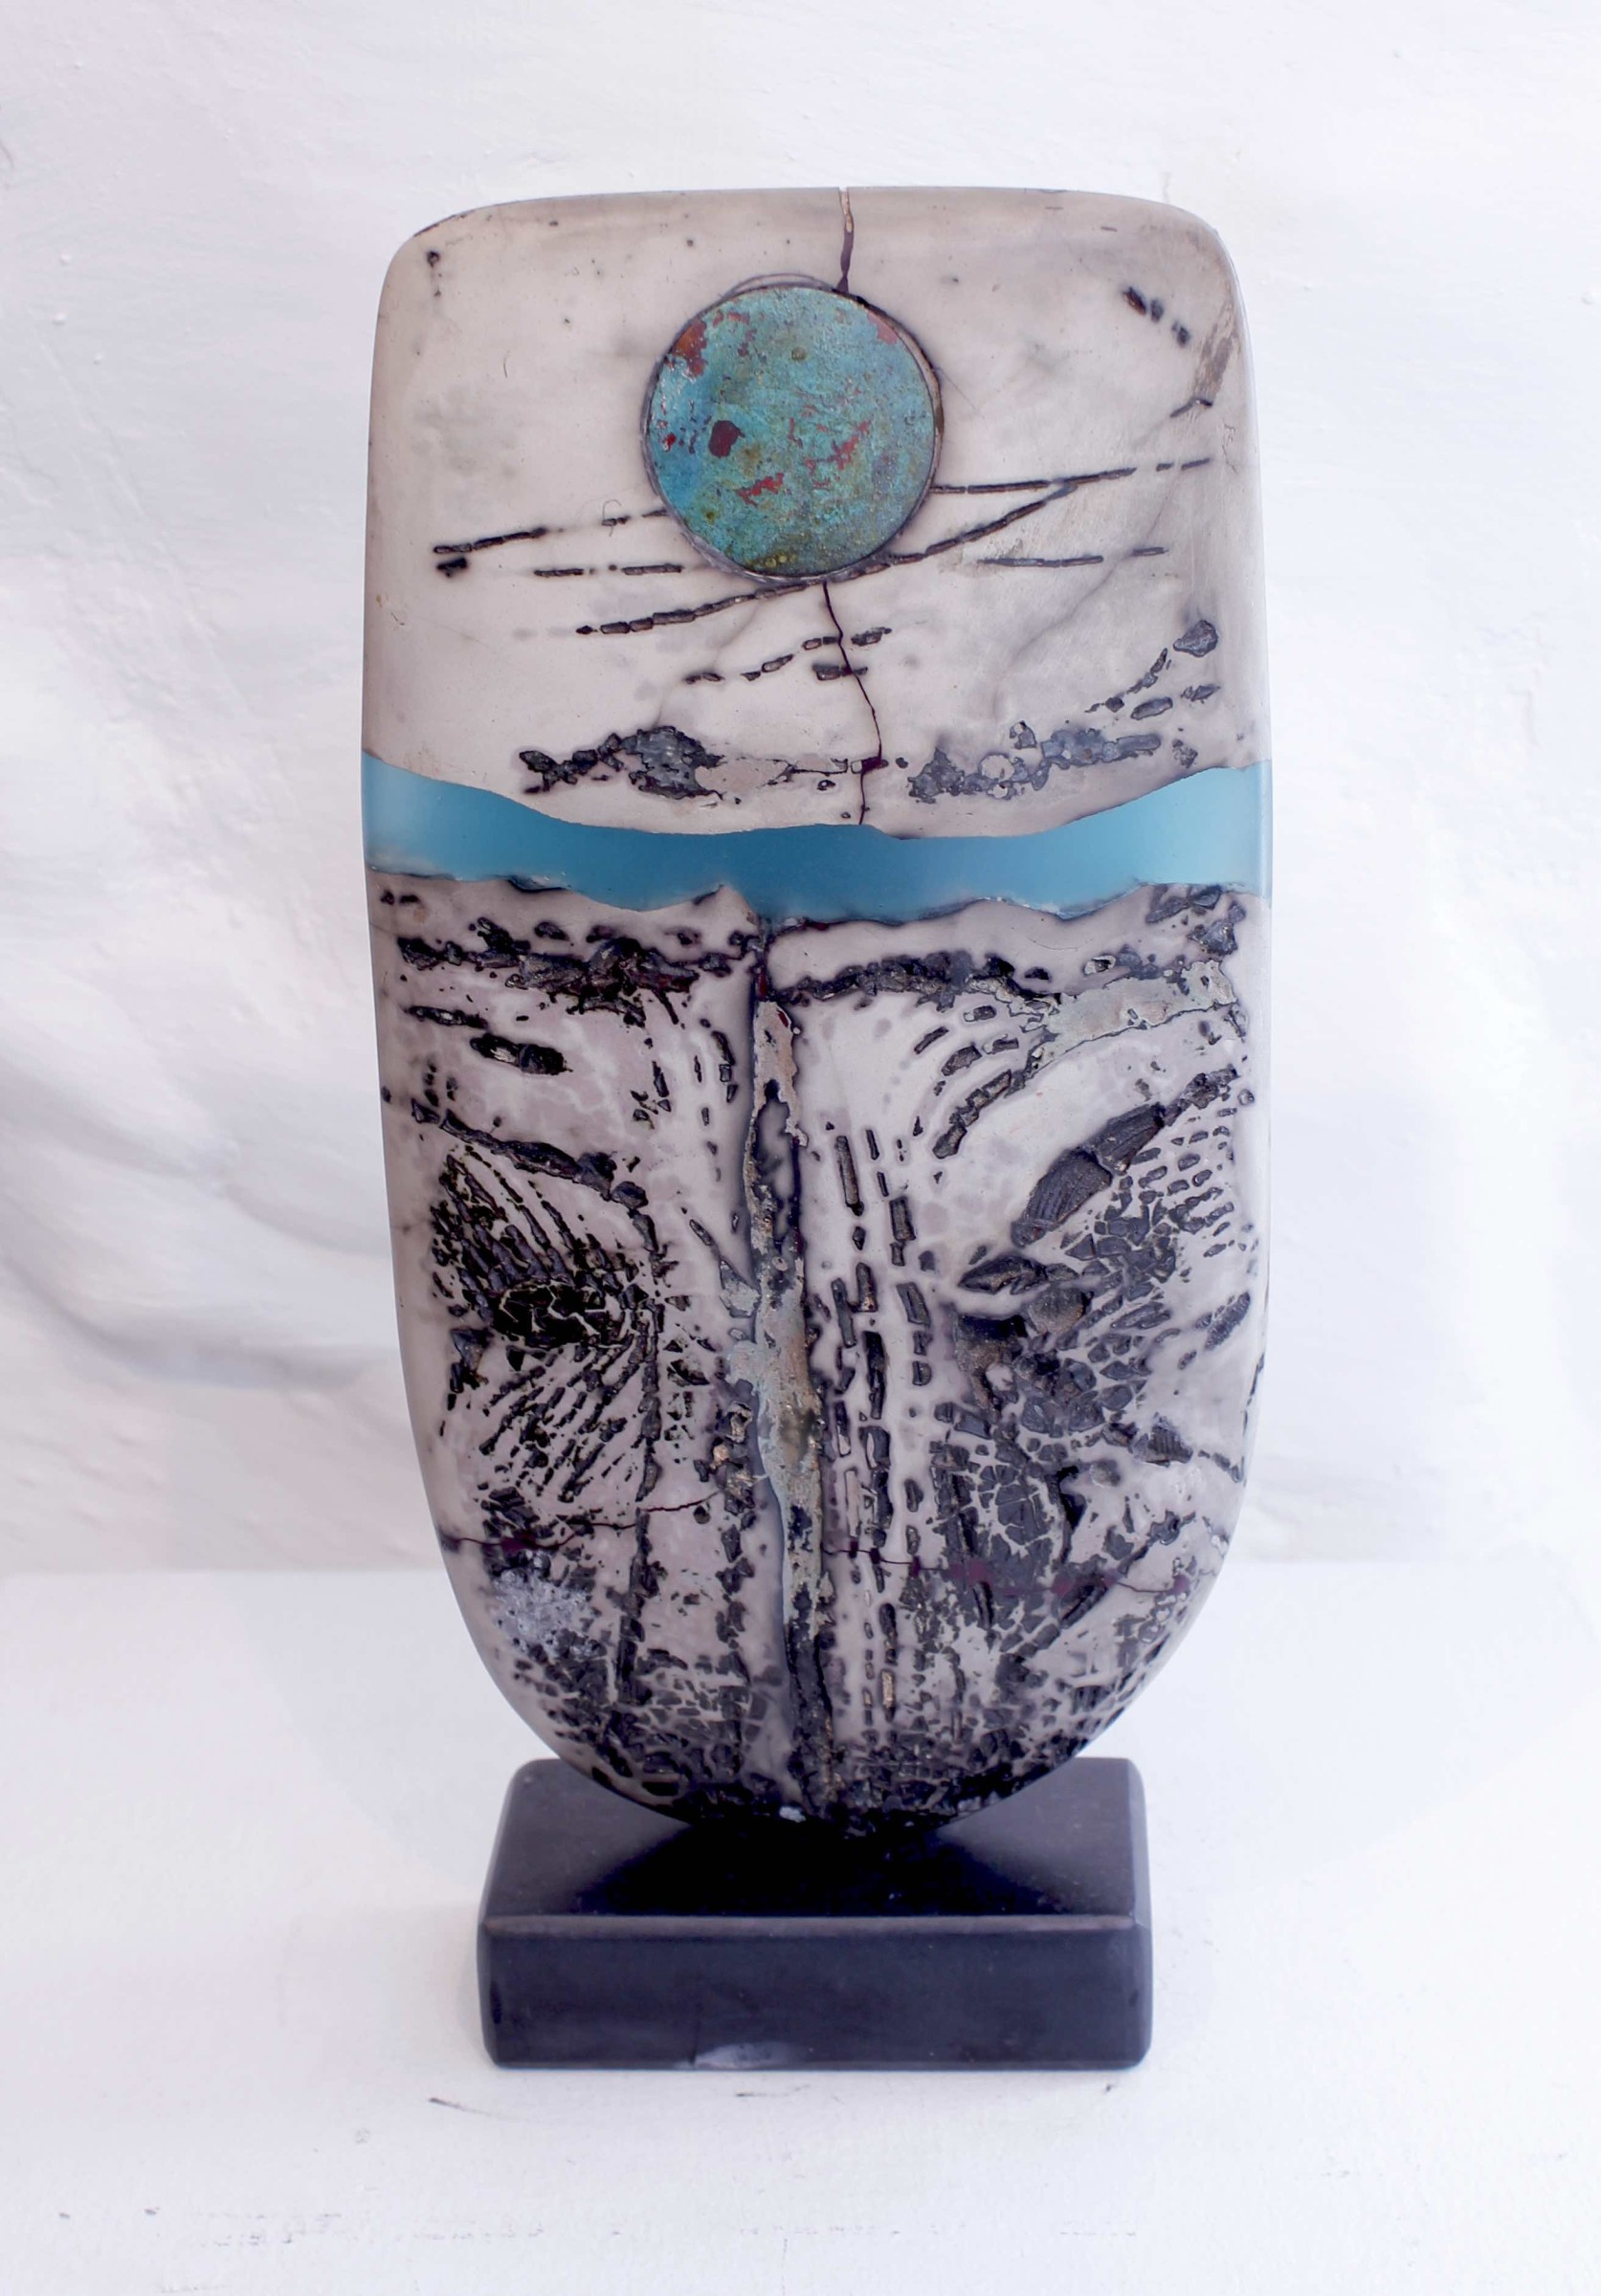 <span class=&#34;link fancybox-details-link&#34;><a href=&#34;/artists/40-peter-hayes/works/5956-peter-hayes-raku-bow-2018/&#34;>View Detail Page</a></span><div class=&#34;artist&#34;><strong>Peter Hayes</strong></div> <div class=&#34;title&#34;><em>Raku Bow</em>, 2018</div> <div class=&#34;signed_and_dated&#34;>signed</div> <div class=&#34;medium&#34;>stoneware</div> <div class=&#34;dimensions&#34;>27.9 x 12.7 cm<br /> 11 x 5 inches</div><div class=&#34;copyright_line&#34;>OwnArt: £ 52 x 10 Months, 0% APR</div>